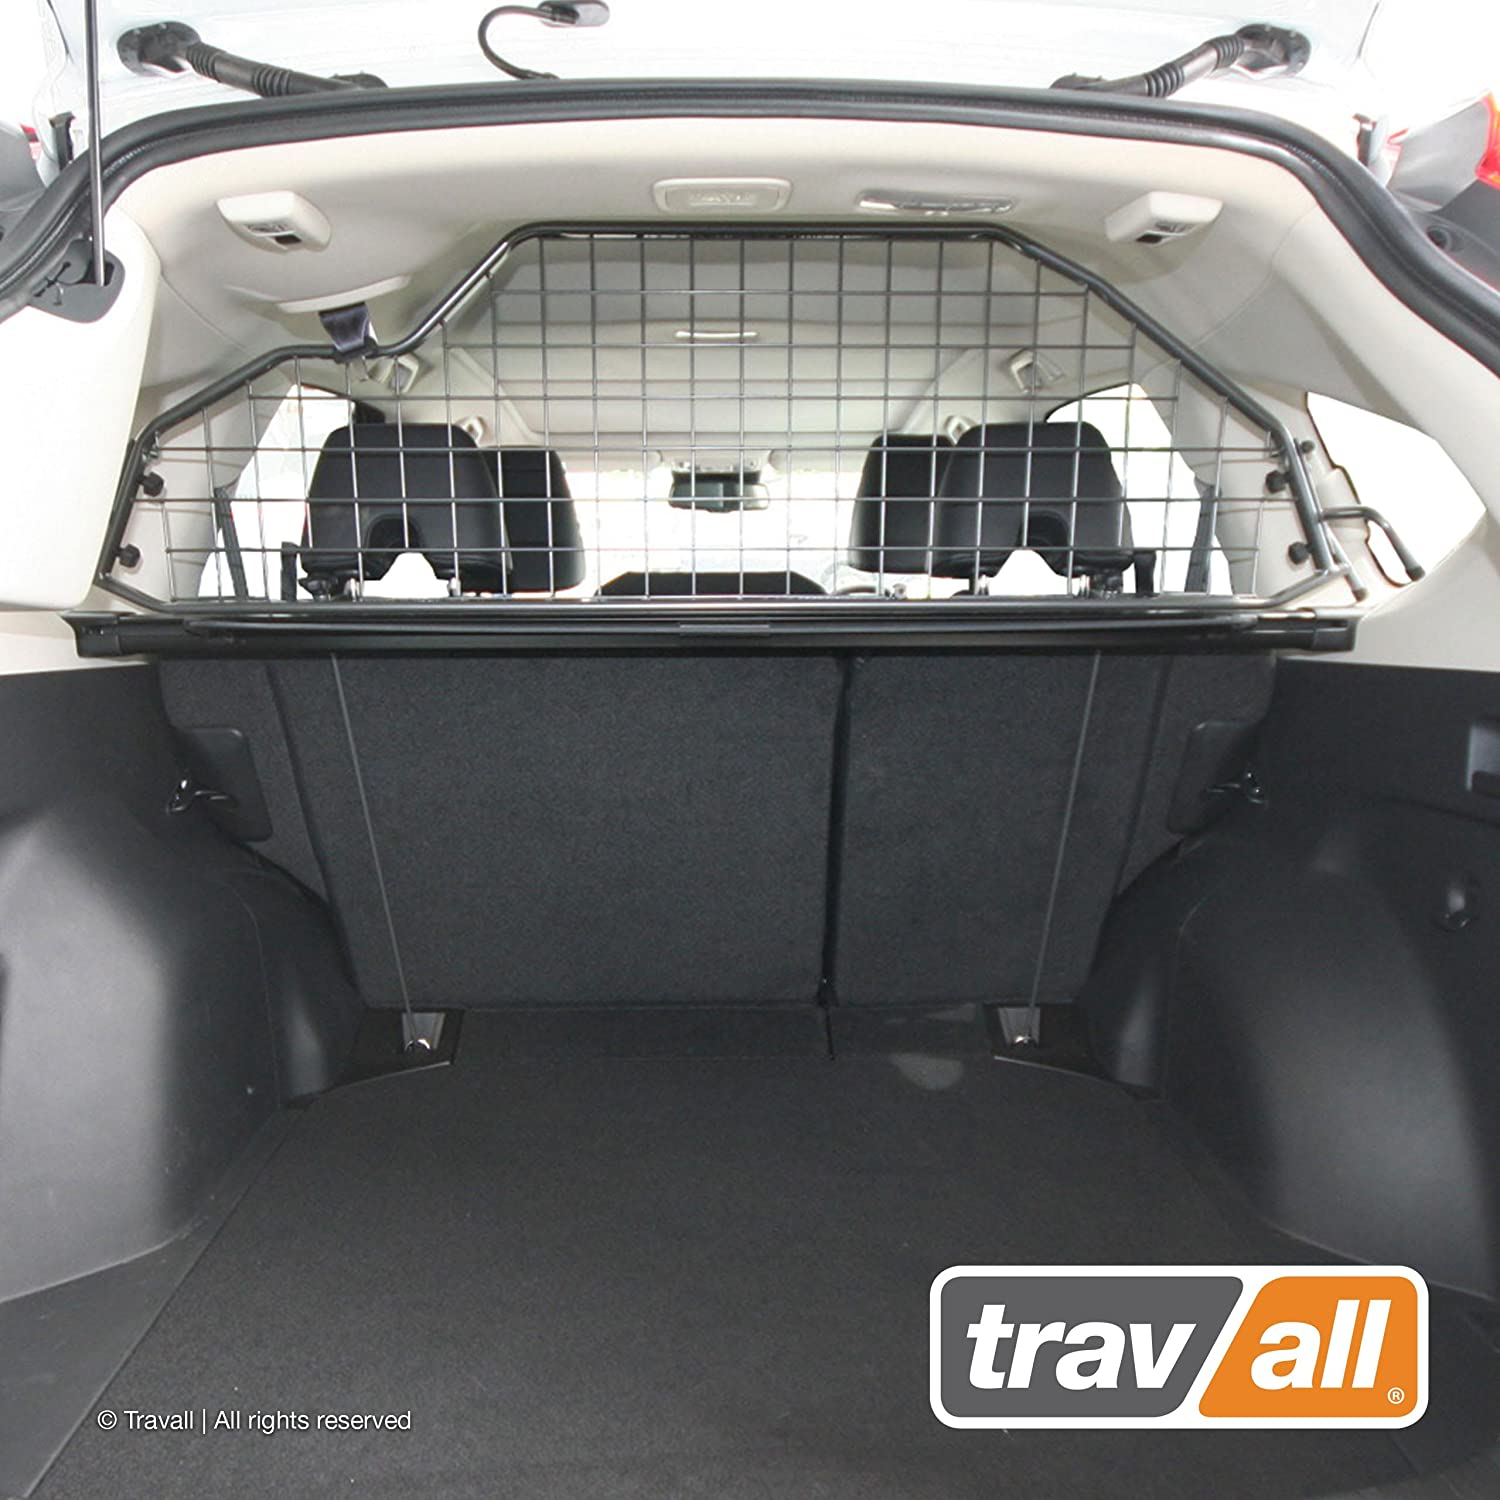 Travall Guard compatible with Honda CR-V